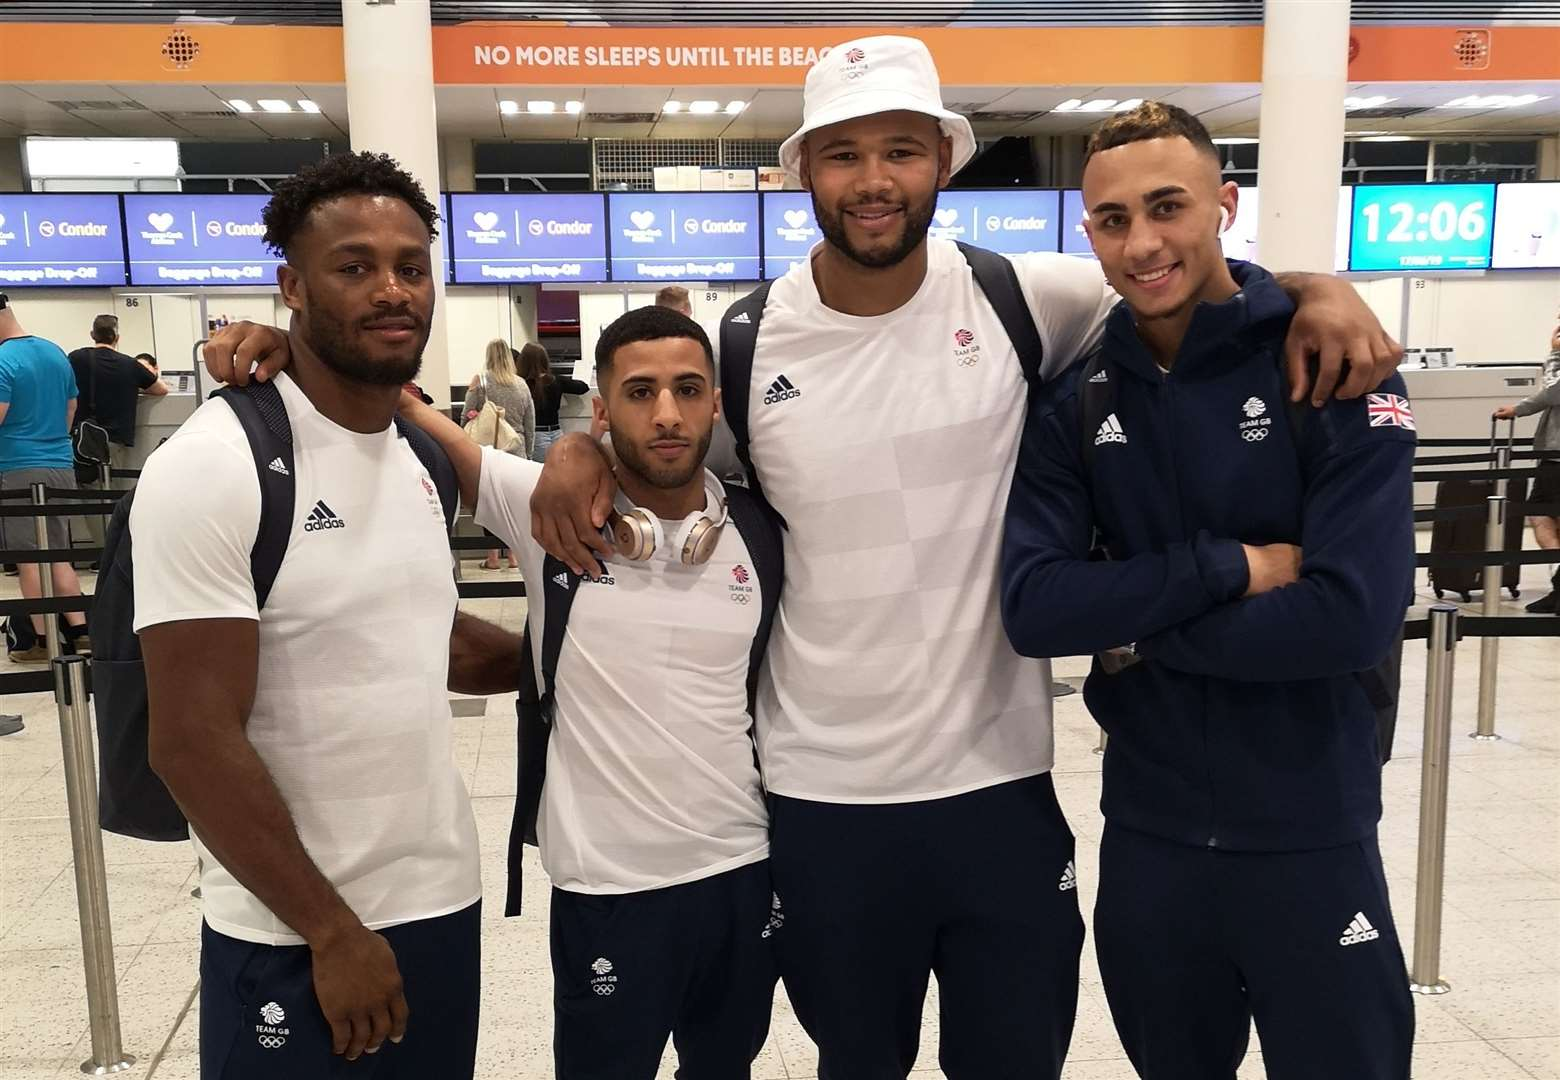 Cheavon Clarke was picked for the European Games in Minsk last year with team-mates Galal Yafai, Frazer Clarke and Benjamin Whittaker